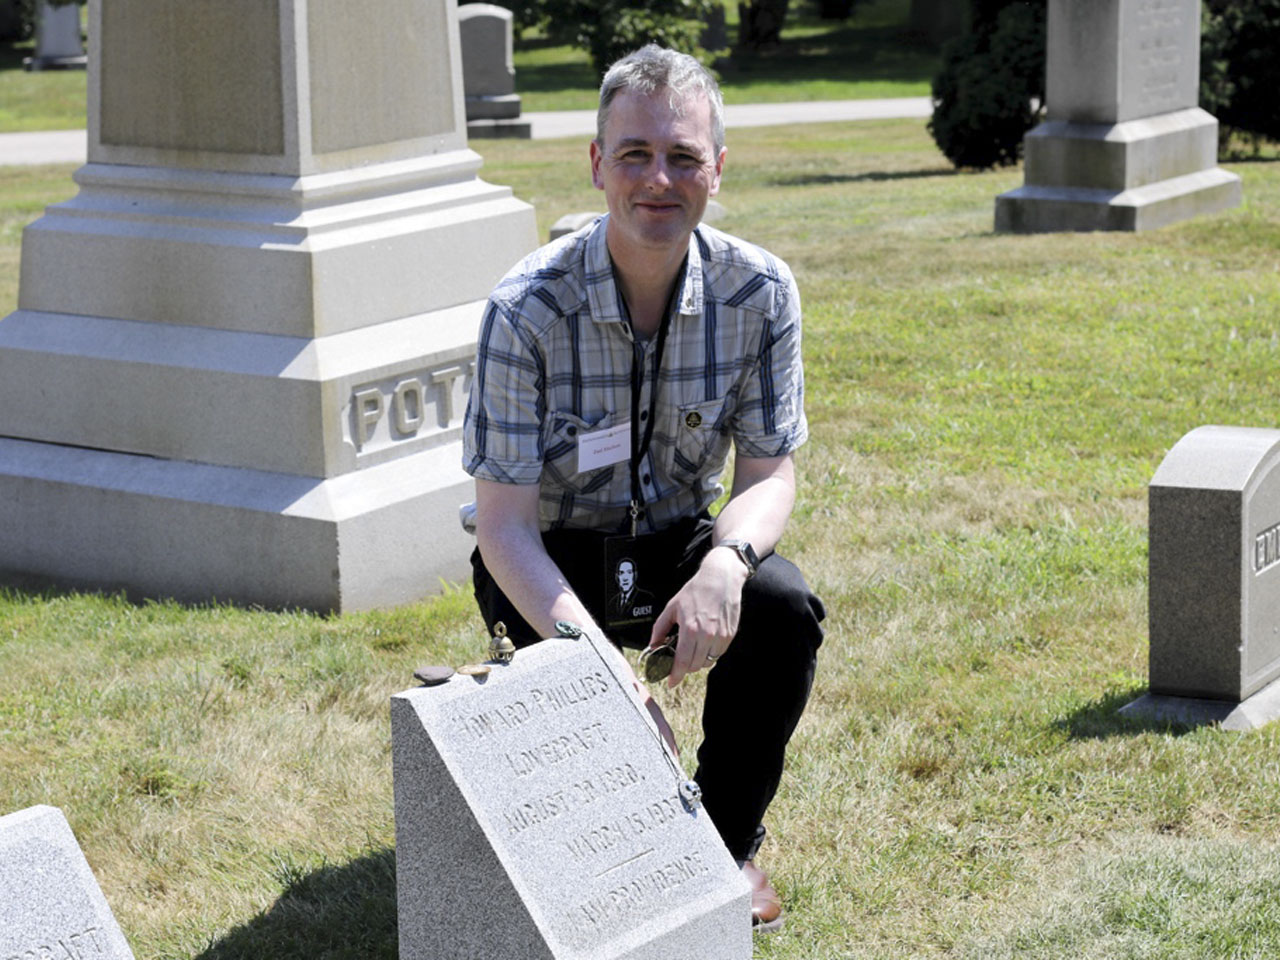 Paul Macelan at Lovecraft's grave